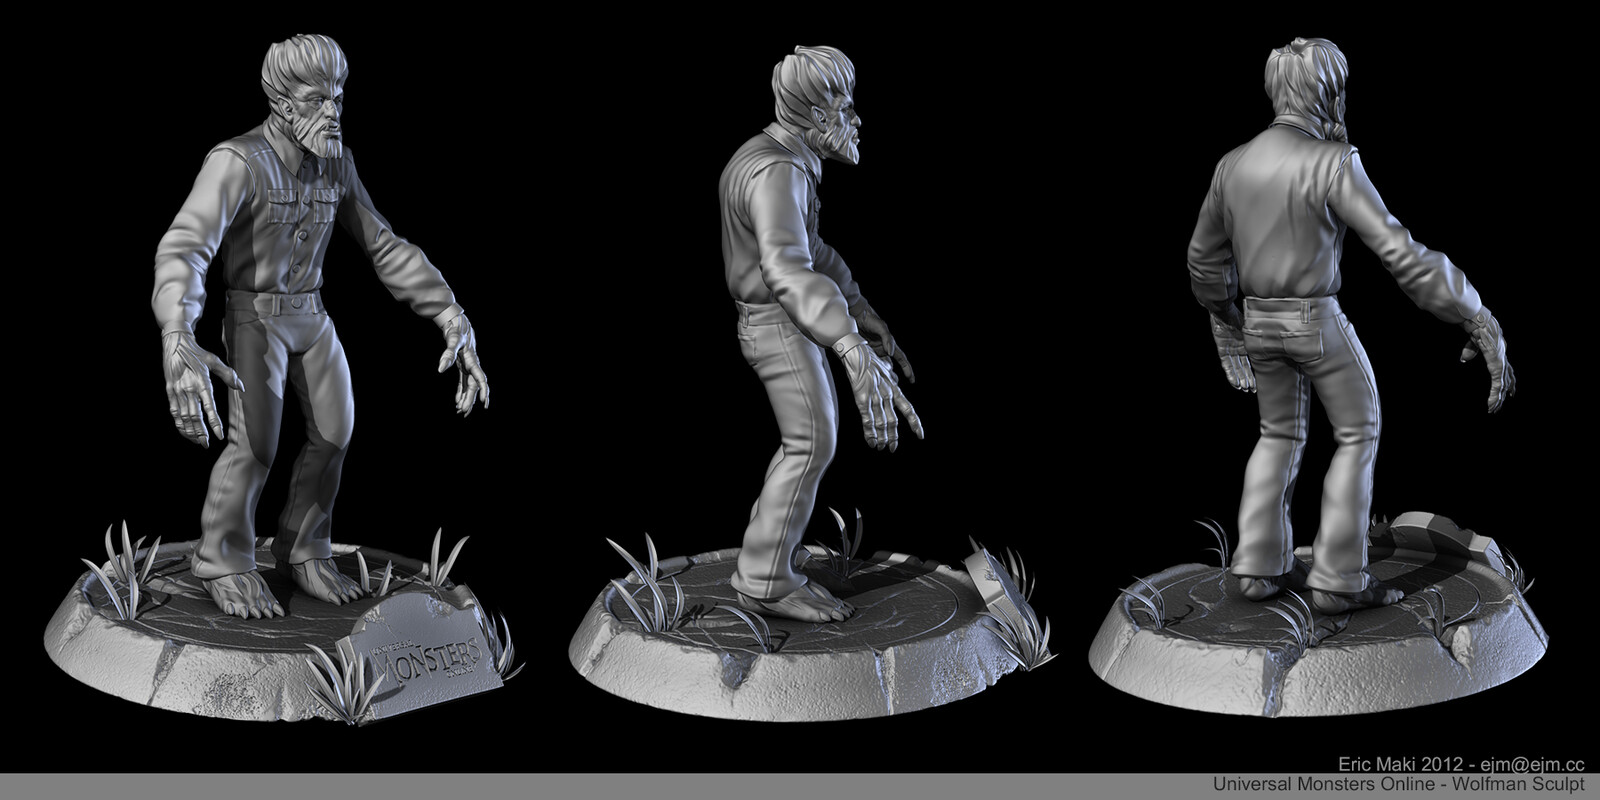 The Wolfman Sculpt